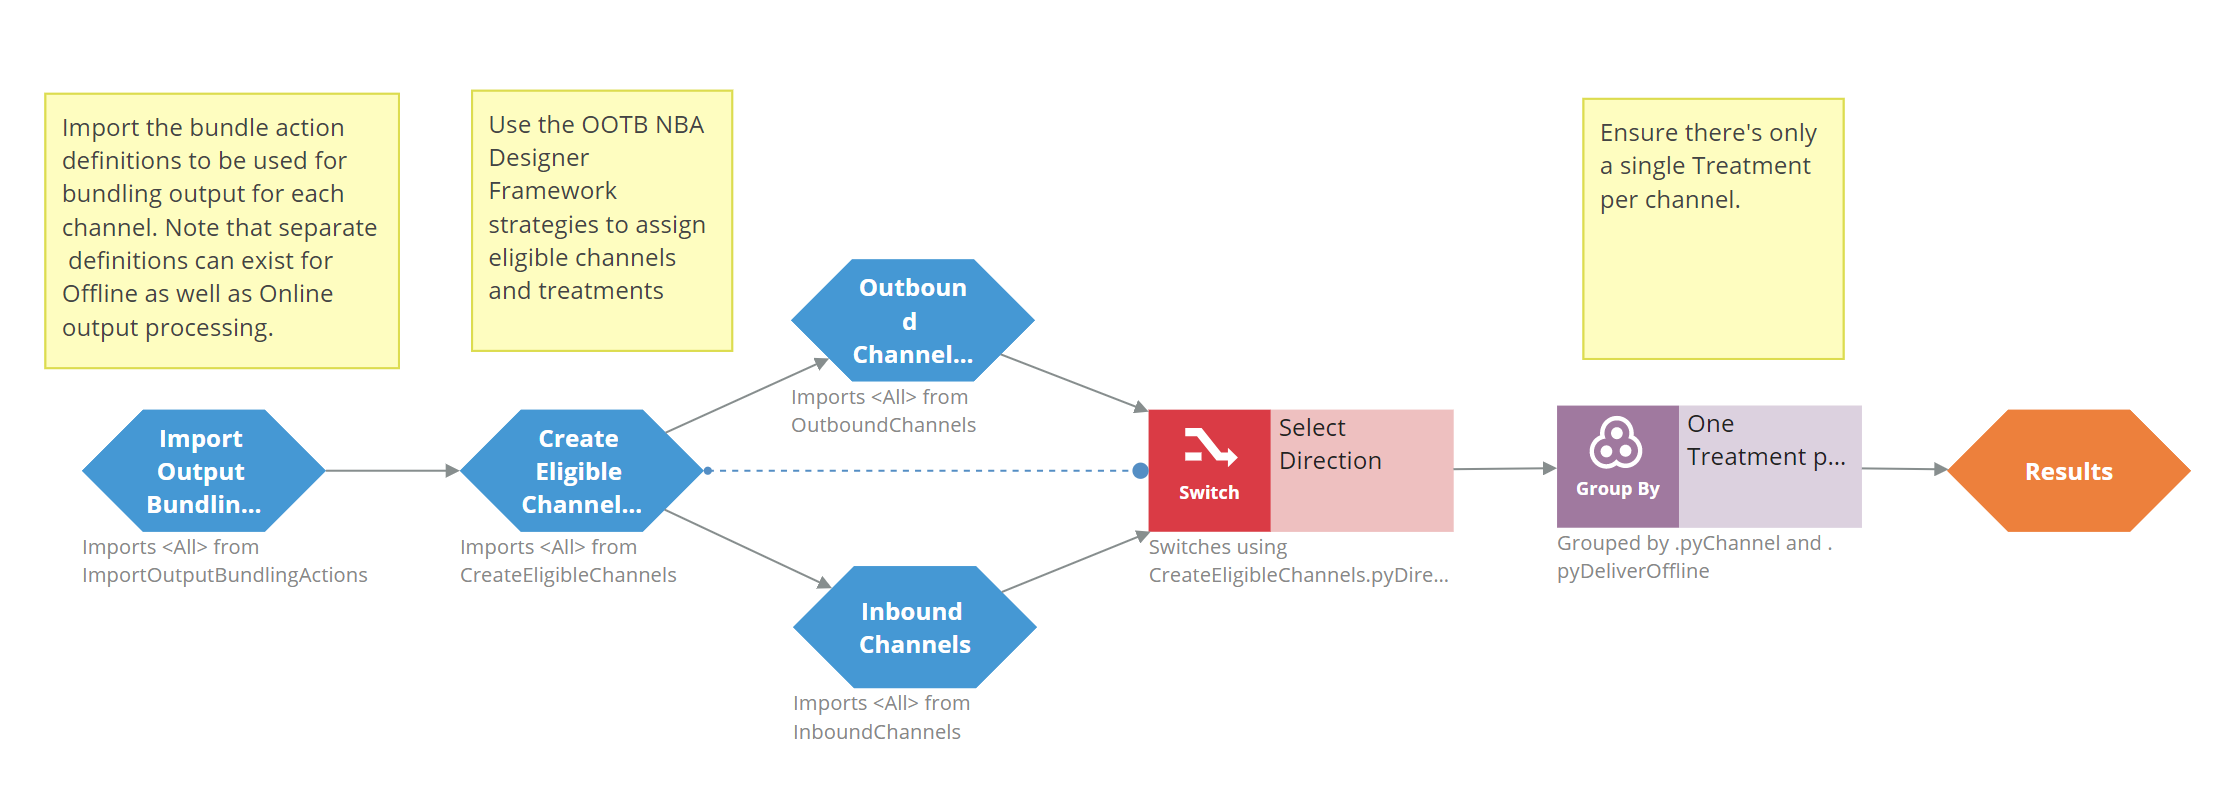 The Get Output Bundling Actions strategy